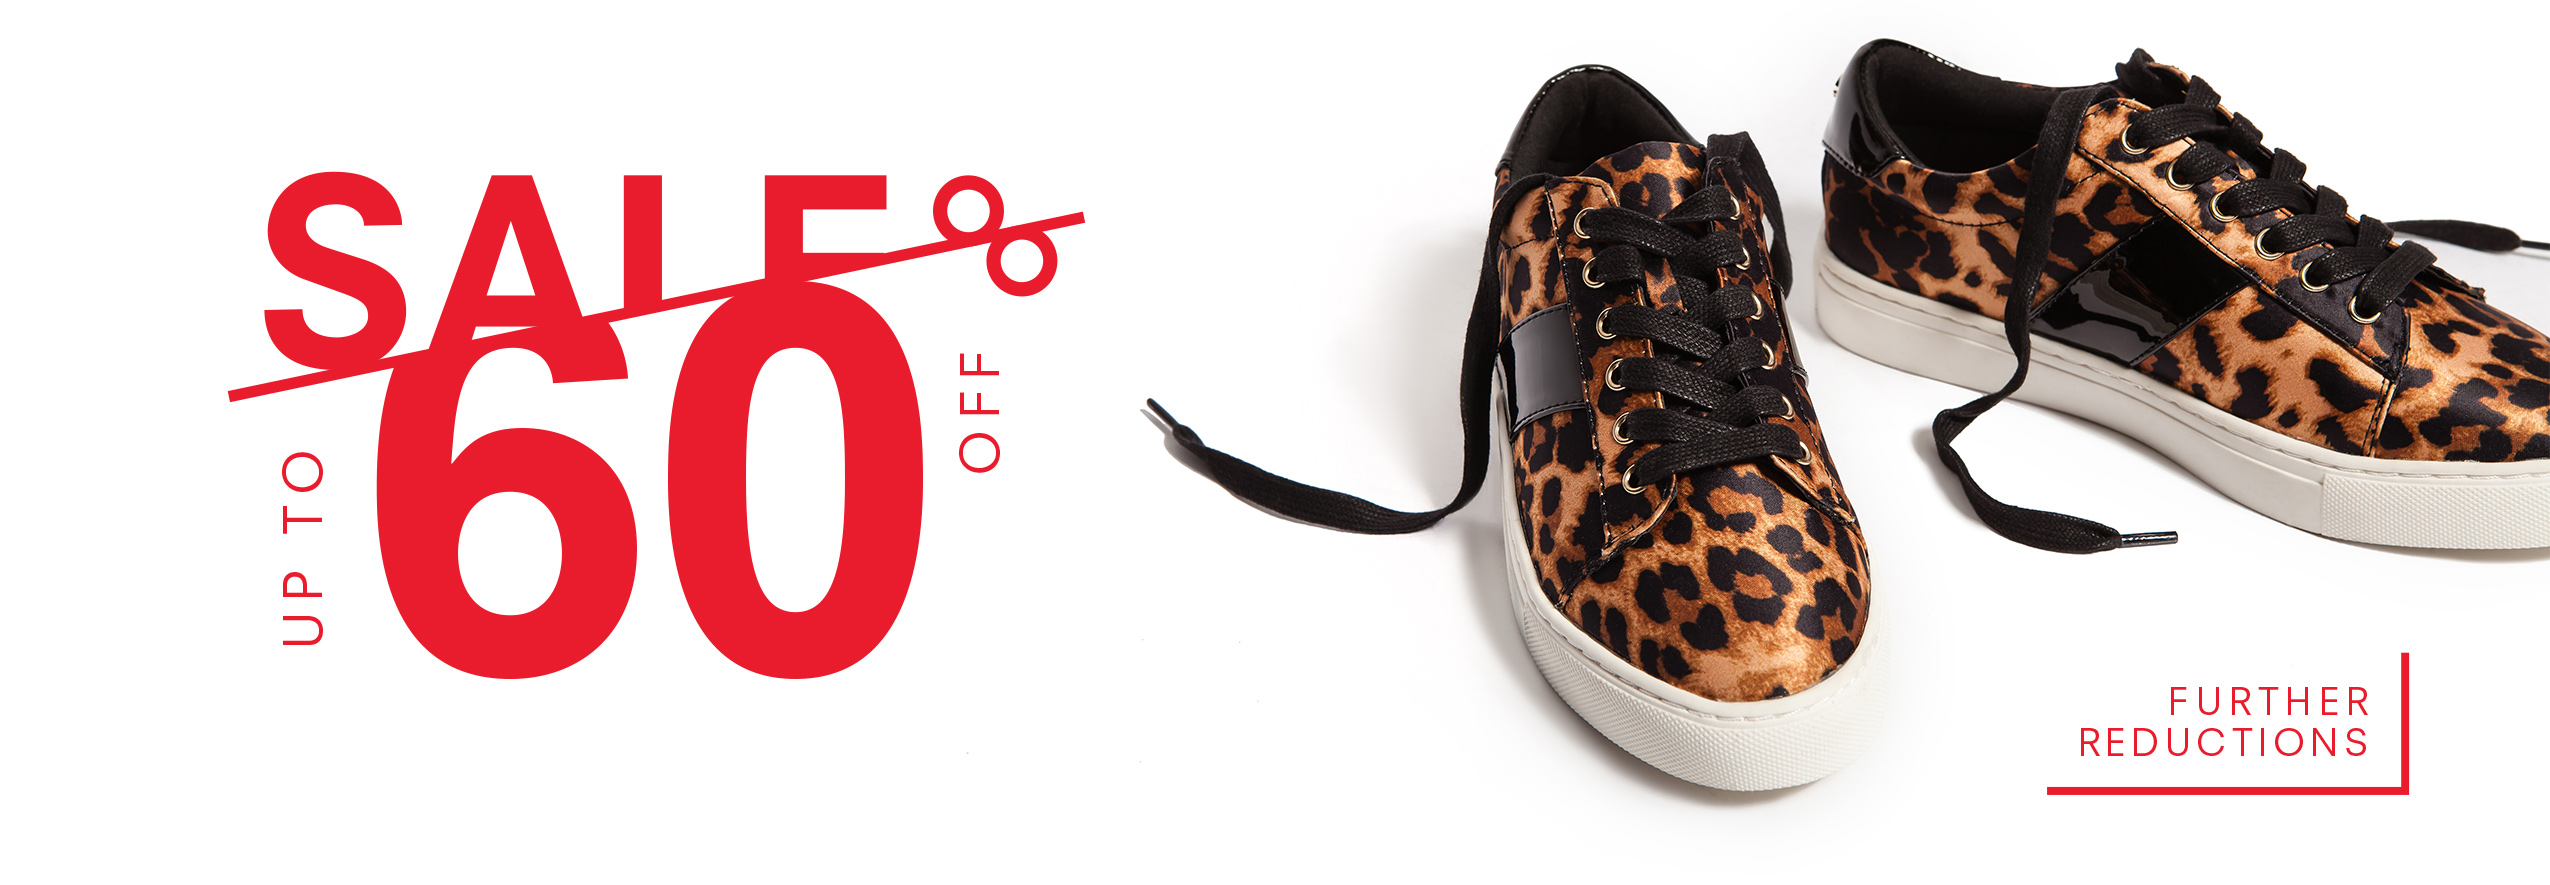 2899852cb29e Mid Season Sale - Further Reductions - Now Up To 60% Off